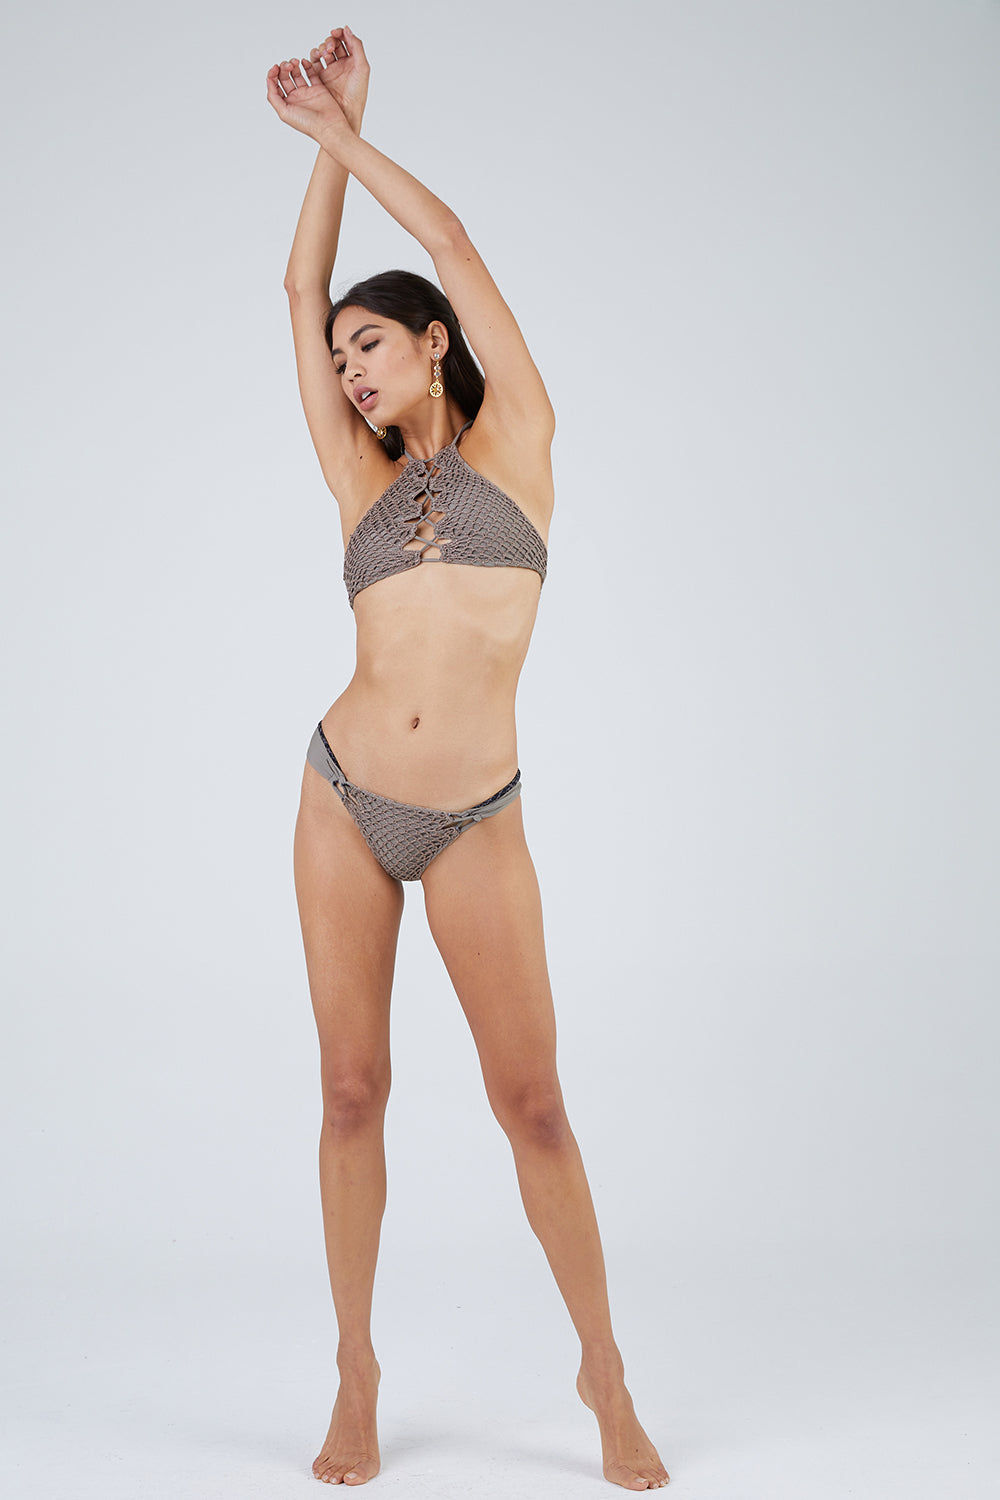 ACACIA Papio Cheeky Crochet Bikini Bottom - Cement Grey Bikini Bottom   Cement Grey  Acacia Papio Crochet Cheeky Bikini Bottom - Cement Back View   Smooth Wide Straps Lacing Side Detail Crochet Overlay Front & Back  Cheeky - Moderate Coverage  FRont View